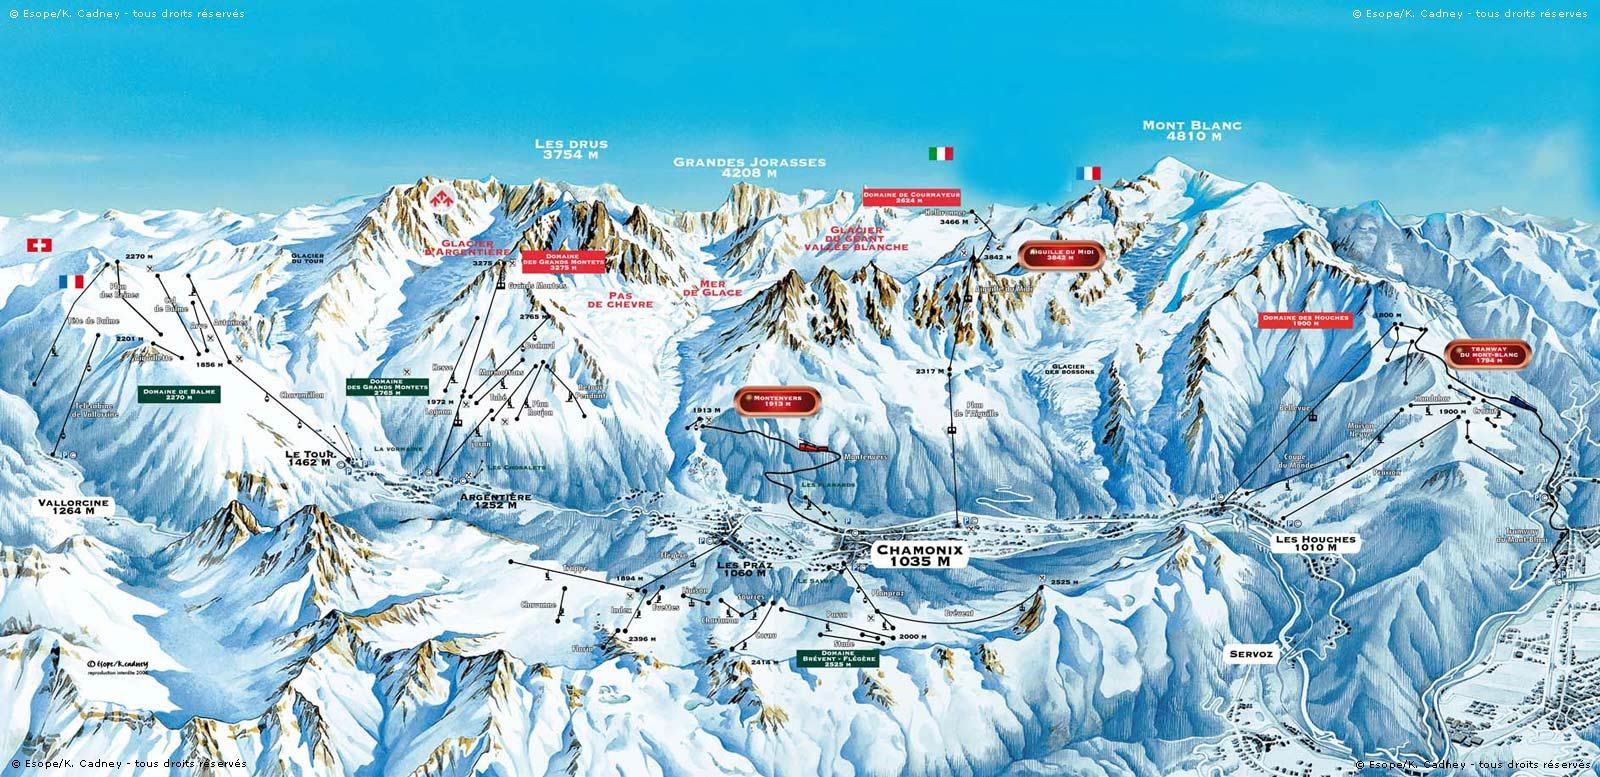 usa piste s for french resorts jski piste chamonix france on map s for french ski resorts jski ski chamonix france on chamonix france on map